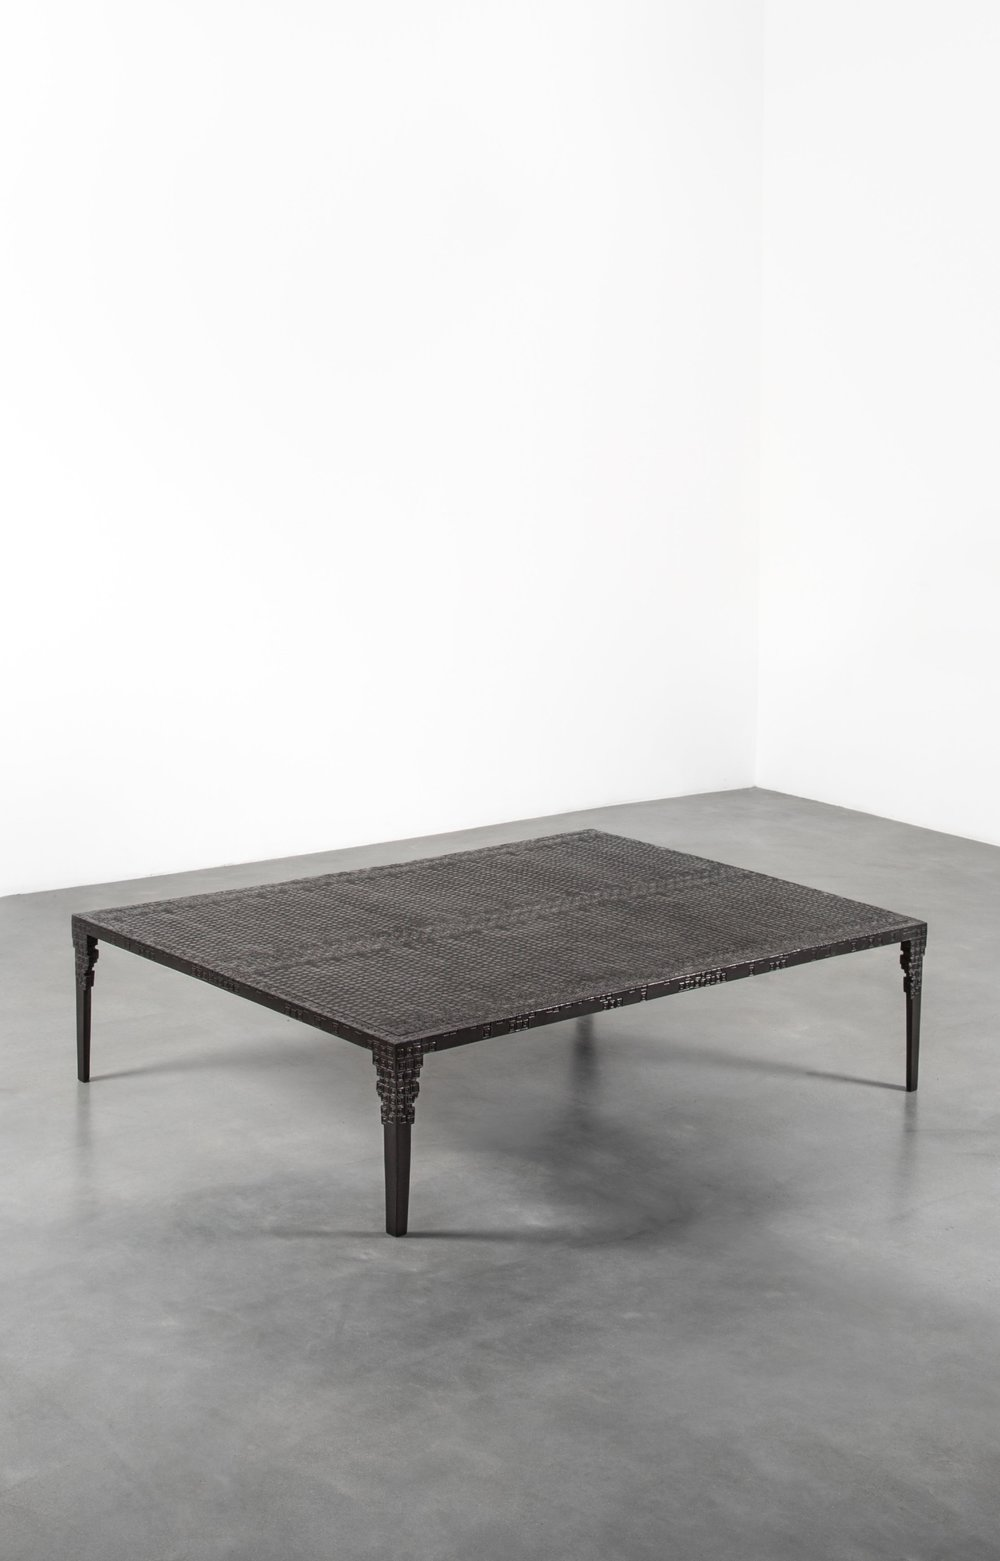 INGRID DONAT  TABLE BASSE KOUMBA (6 PAN PATINATED) | 2016